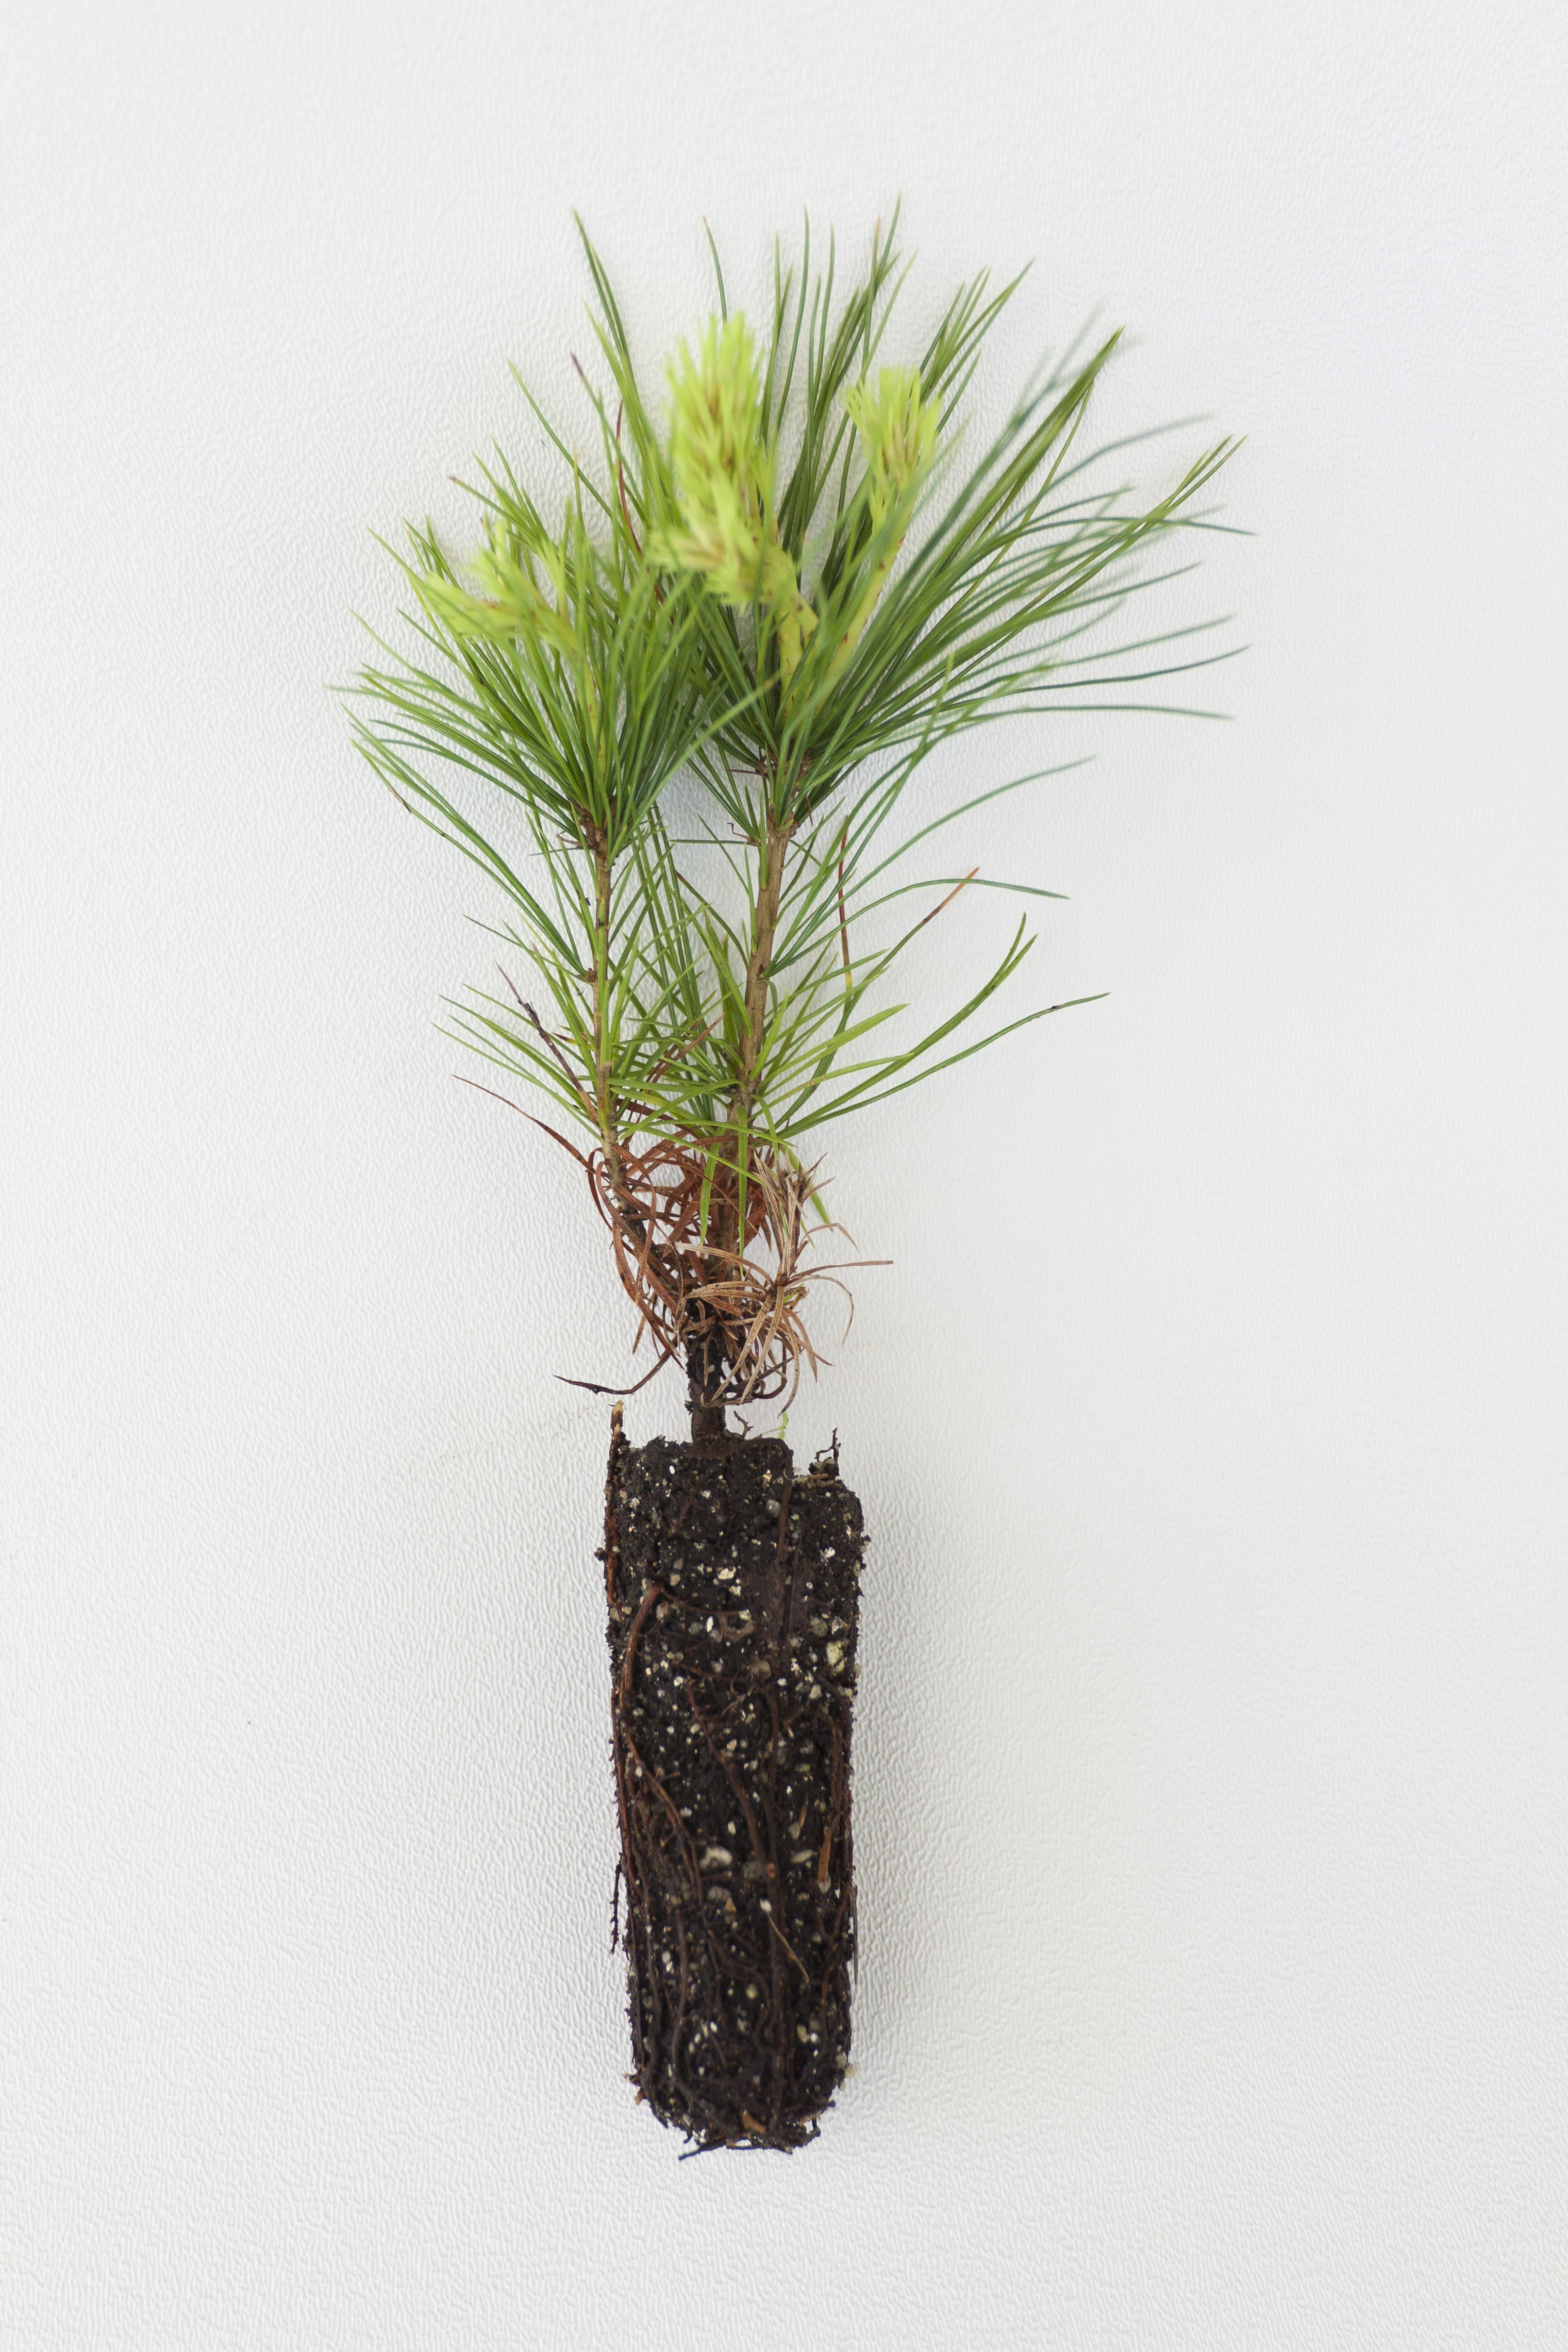 Incorporating some native tree saplings? Maybe like some plant ...